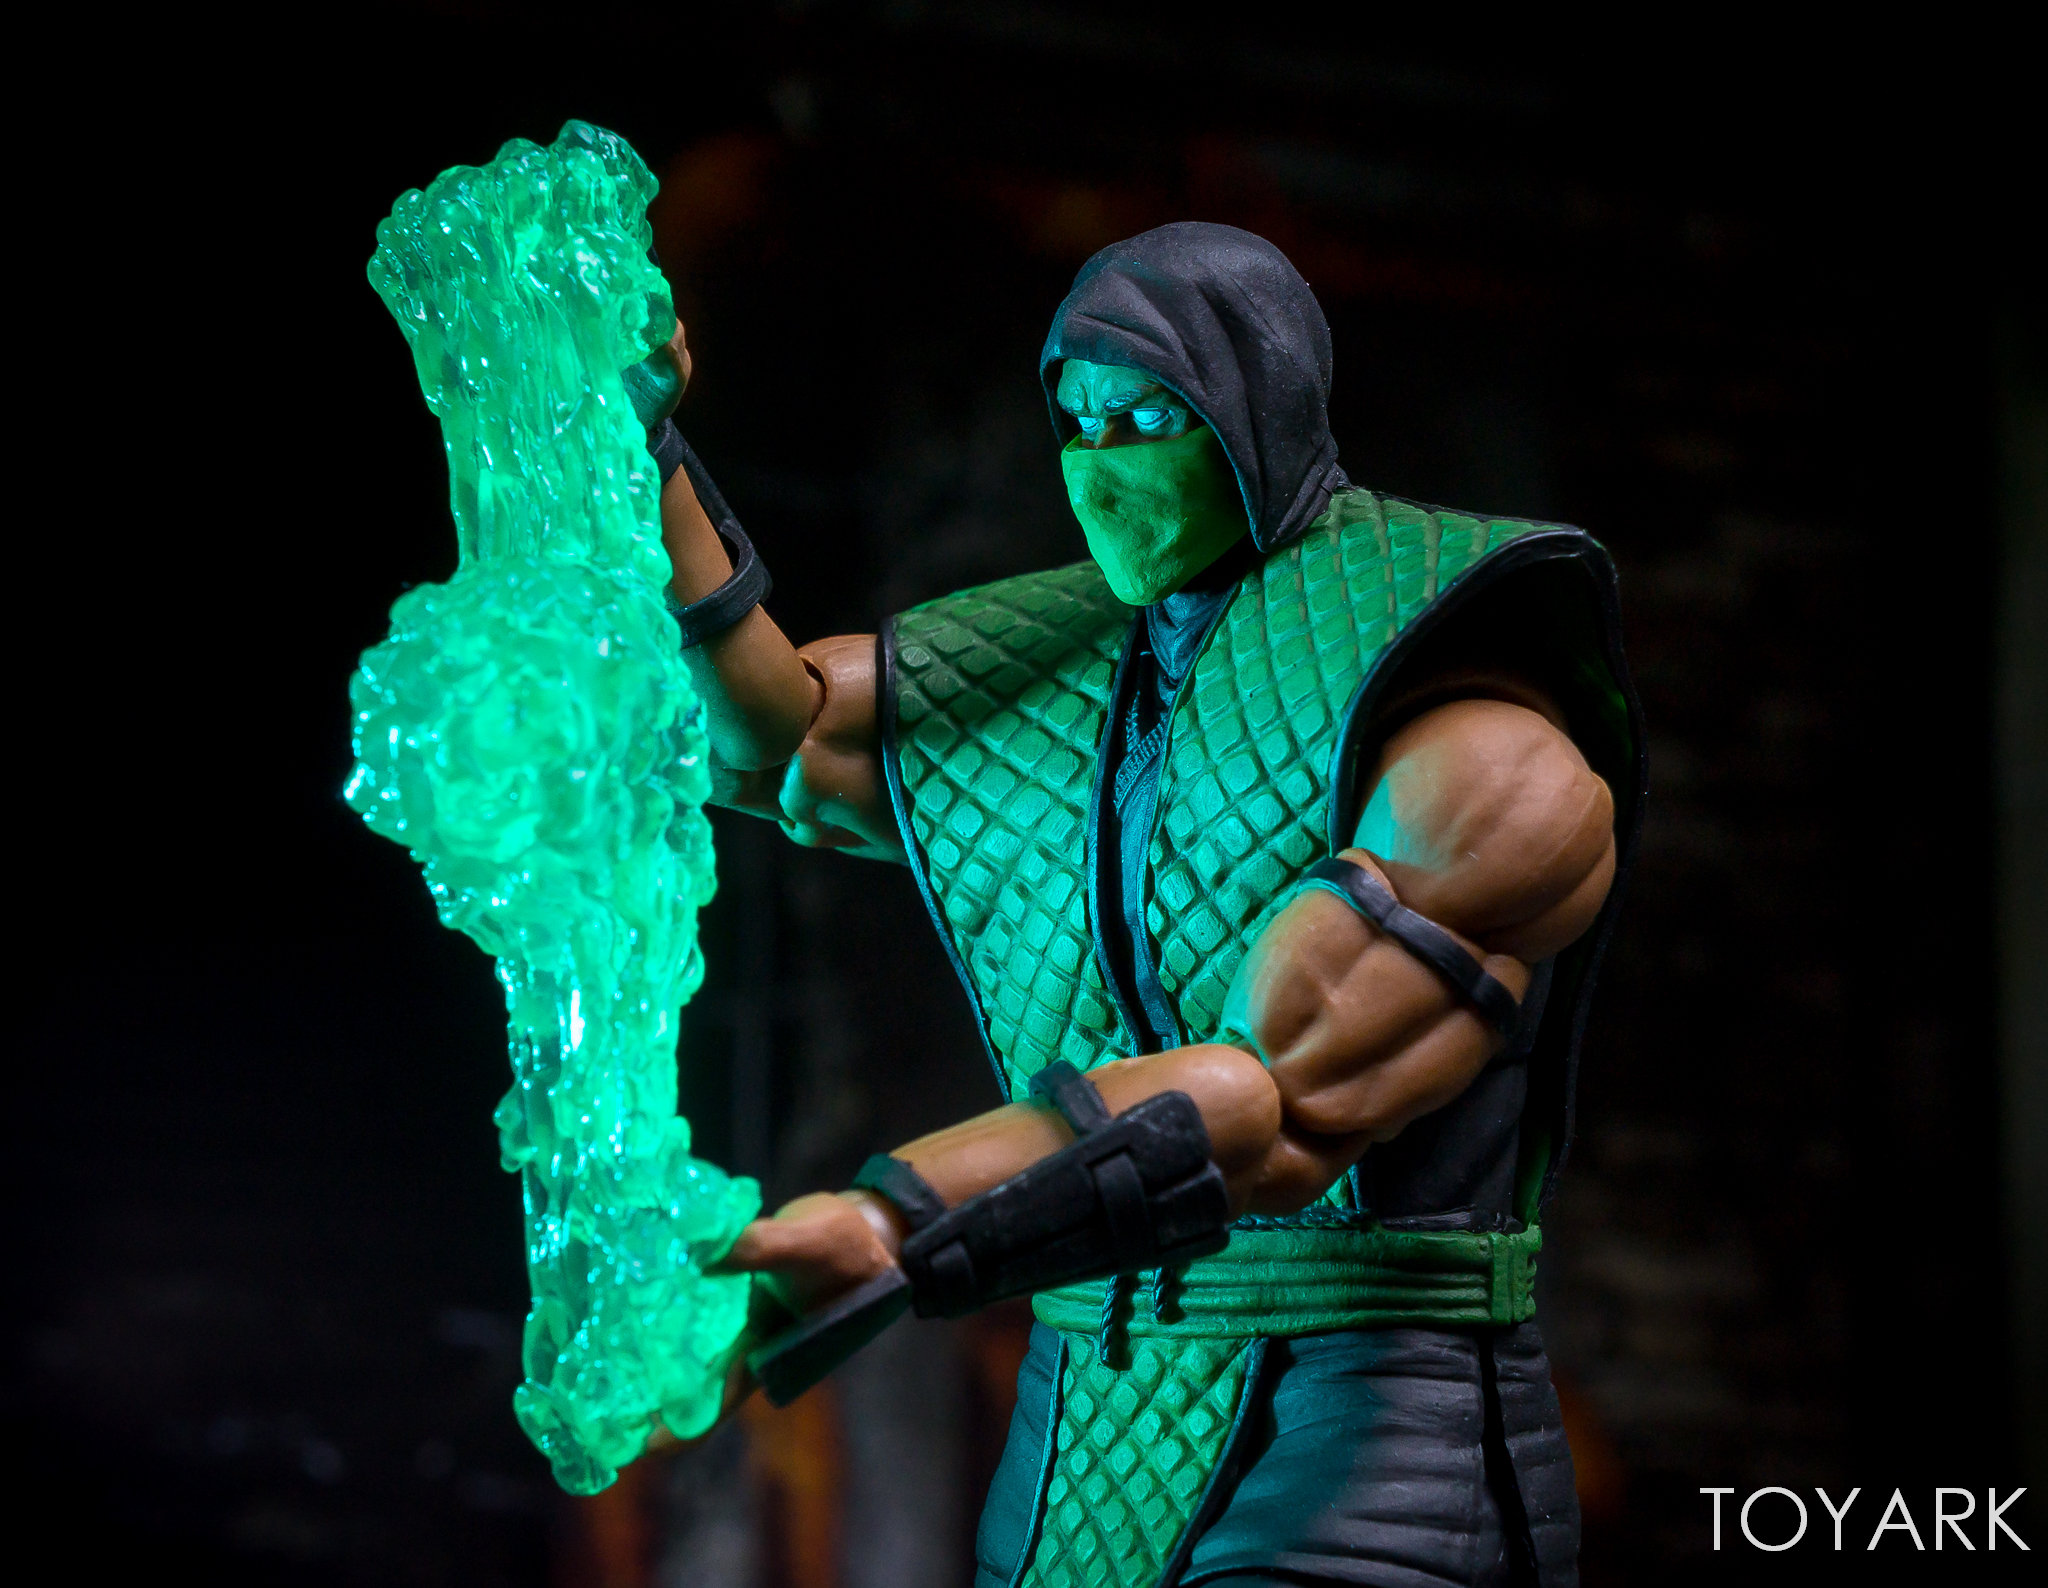 http://news.toyark.com/wp-content/uploads/sites/4/2018/02/Storm-Mortal-Kombat-Reptile-040.jpg